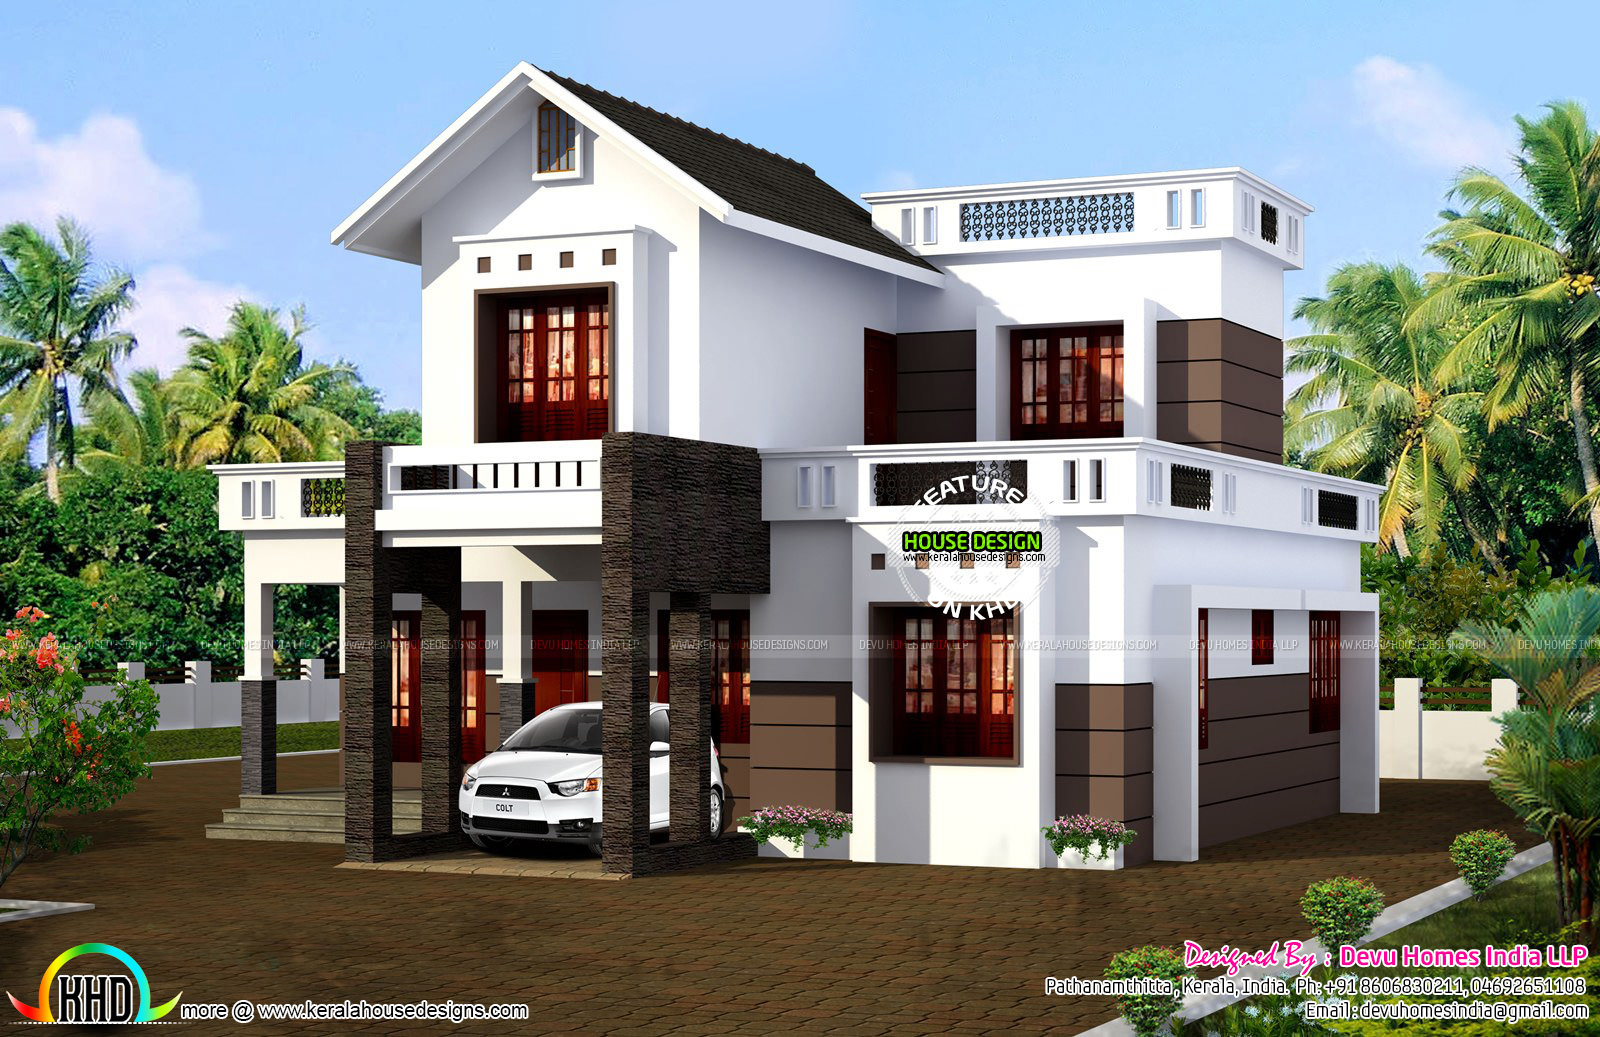 Simple 1524 sq ft house plan kerala home design and for Minimalist house design kerala